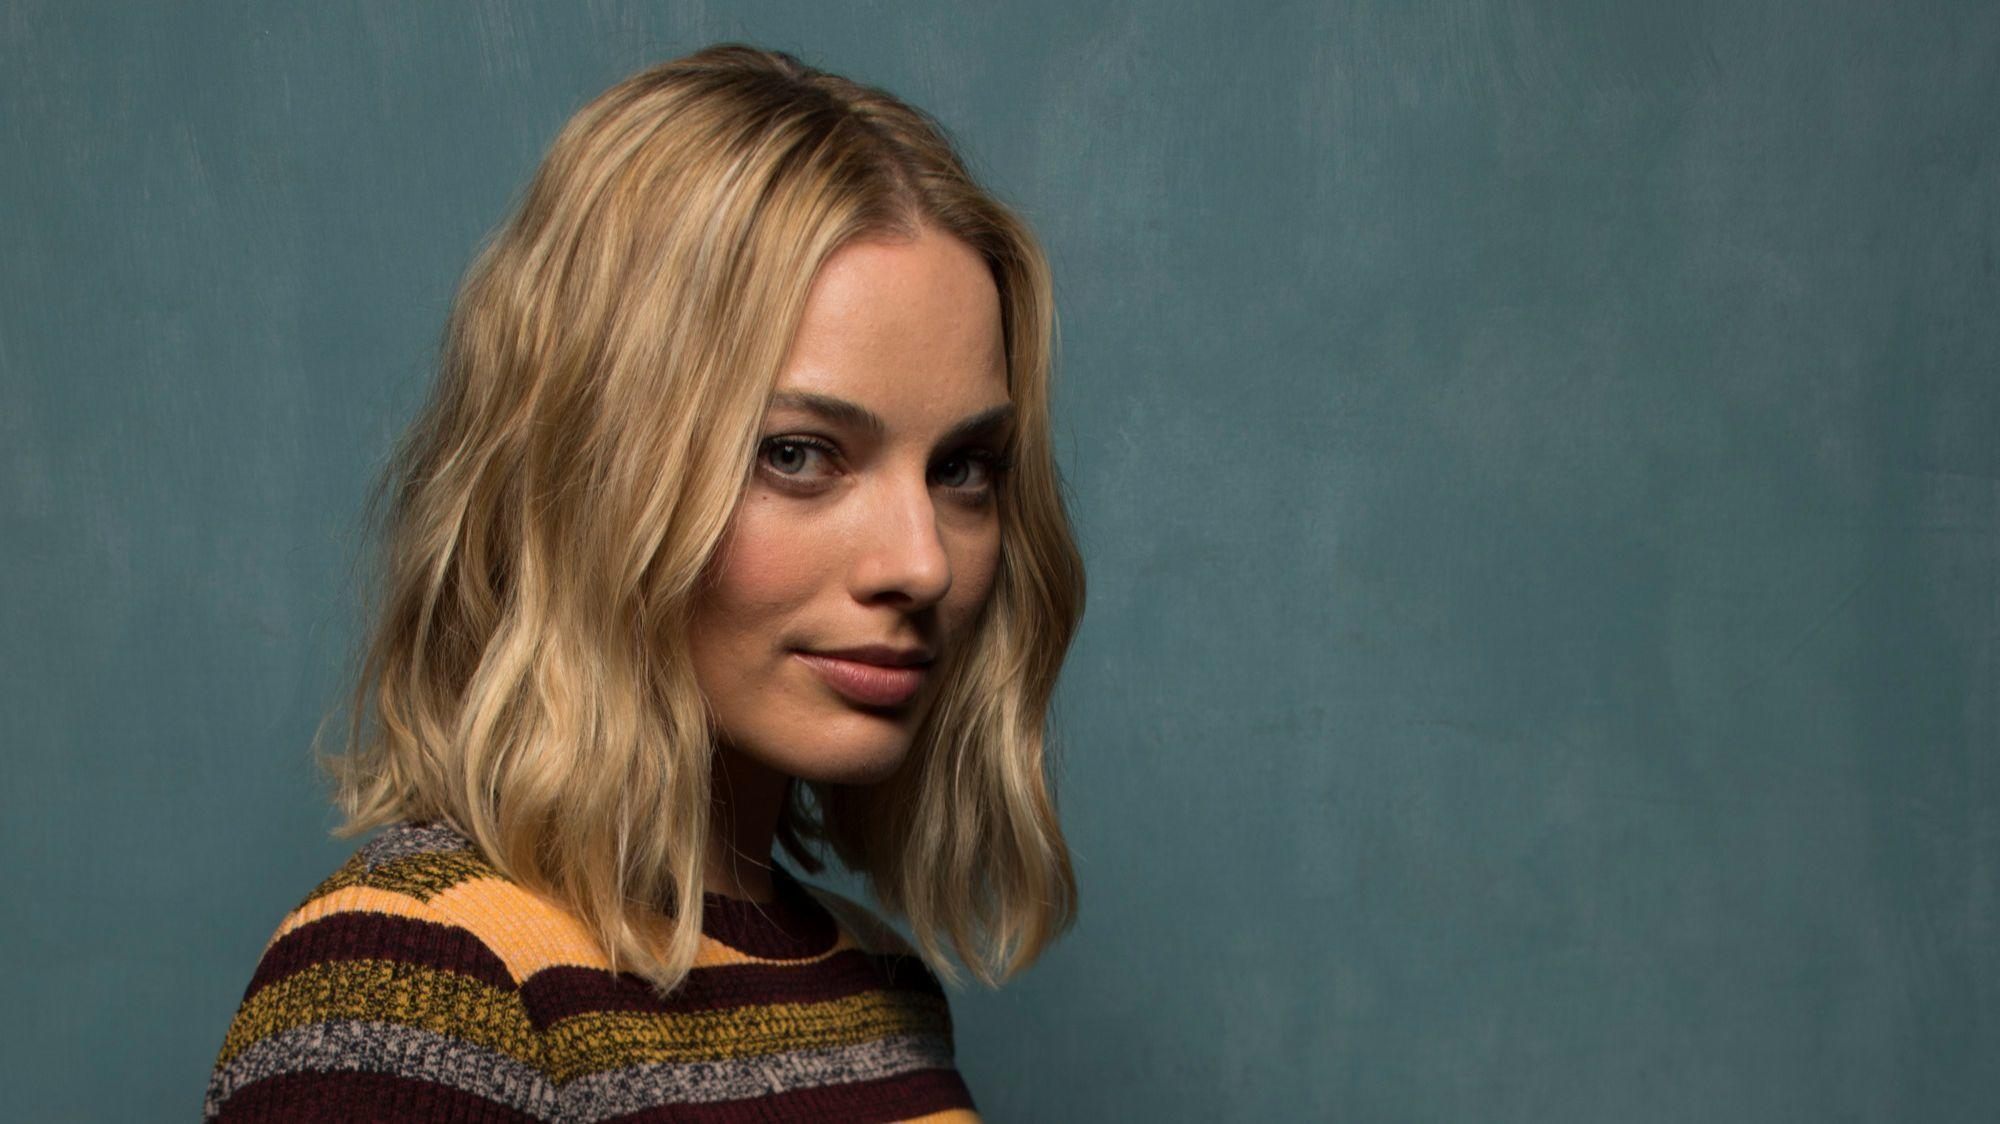 Margot Robbie. (Jay L. Clendenin / Los Angeles Times)